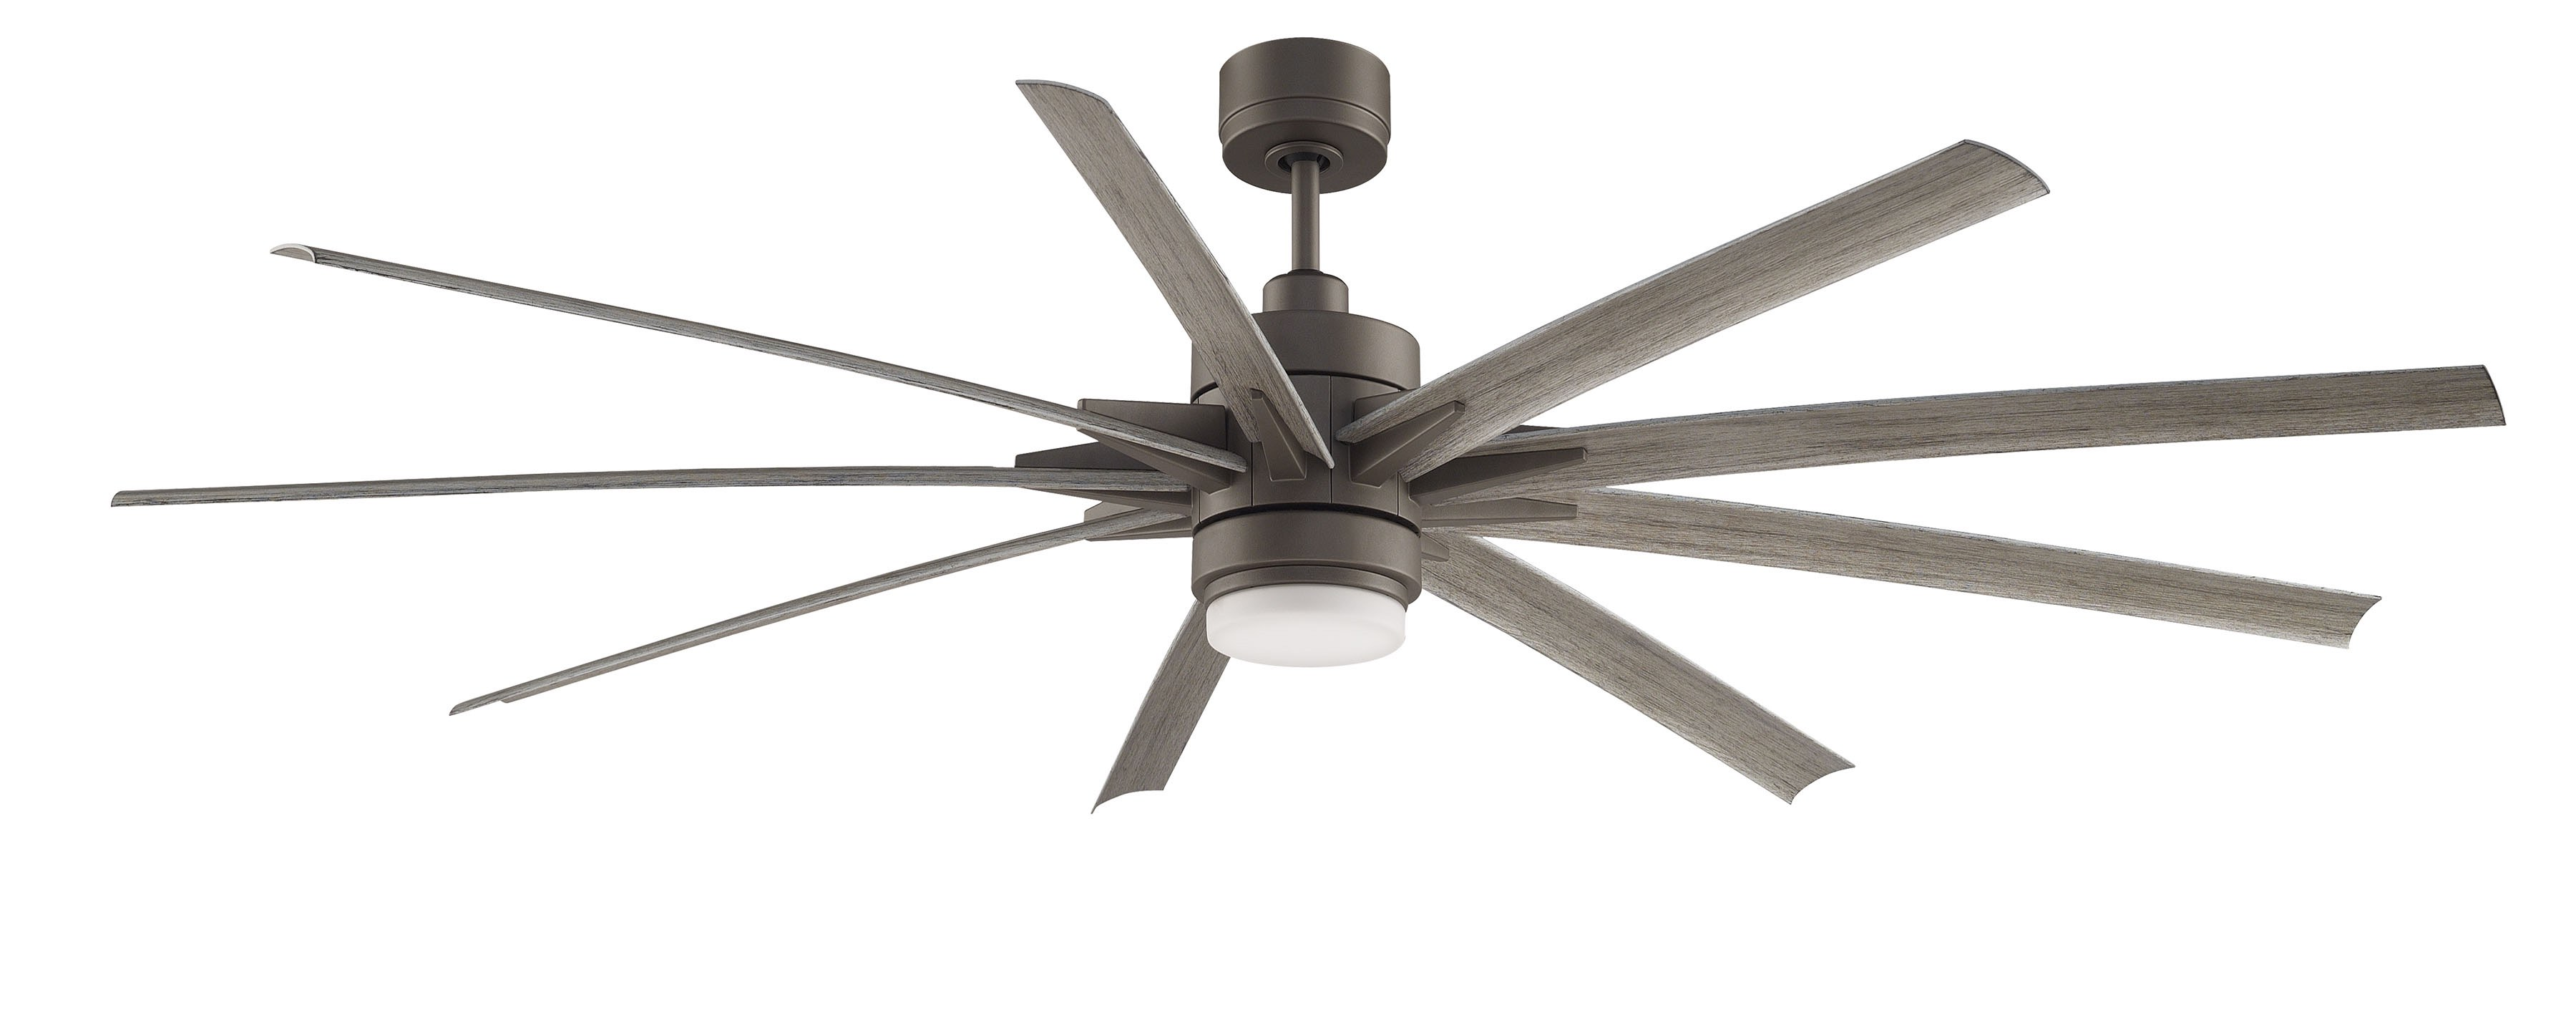 integrated ceilings hugger rp ceiling light in kit fan blades fans w blade led inch lighting